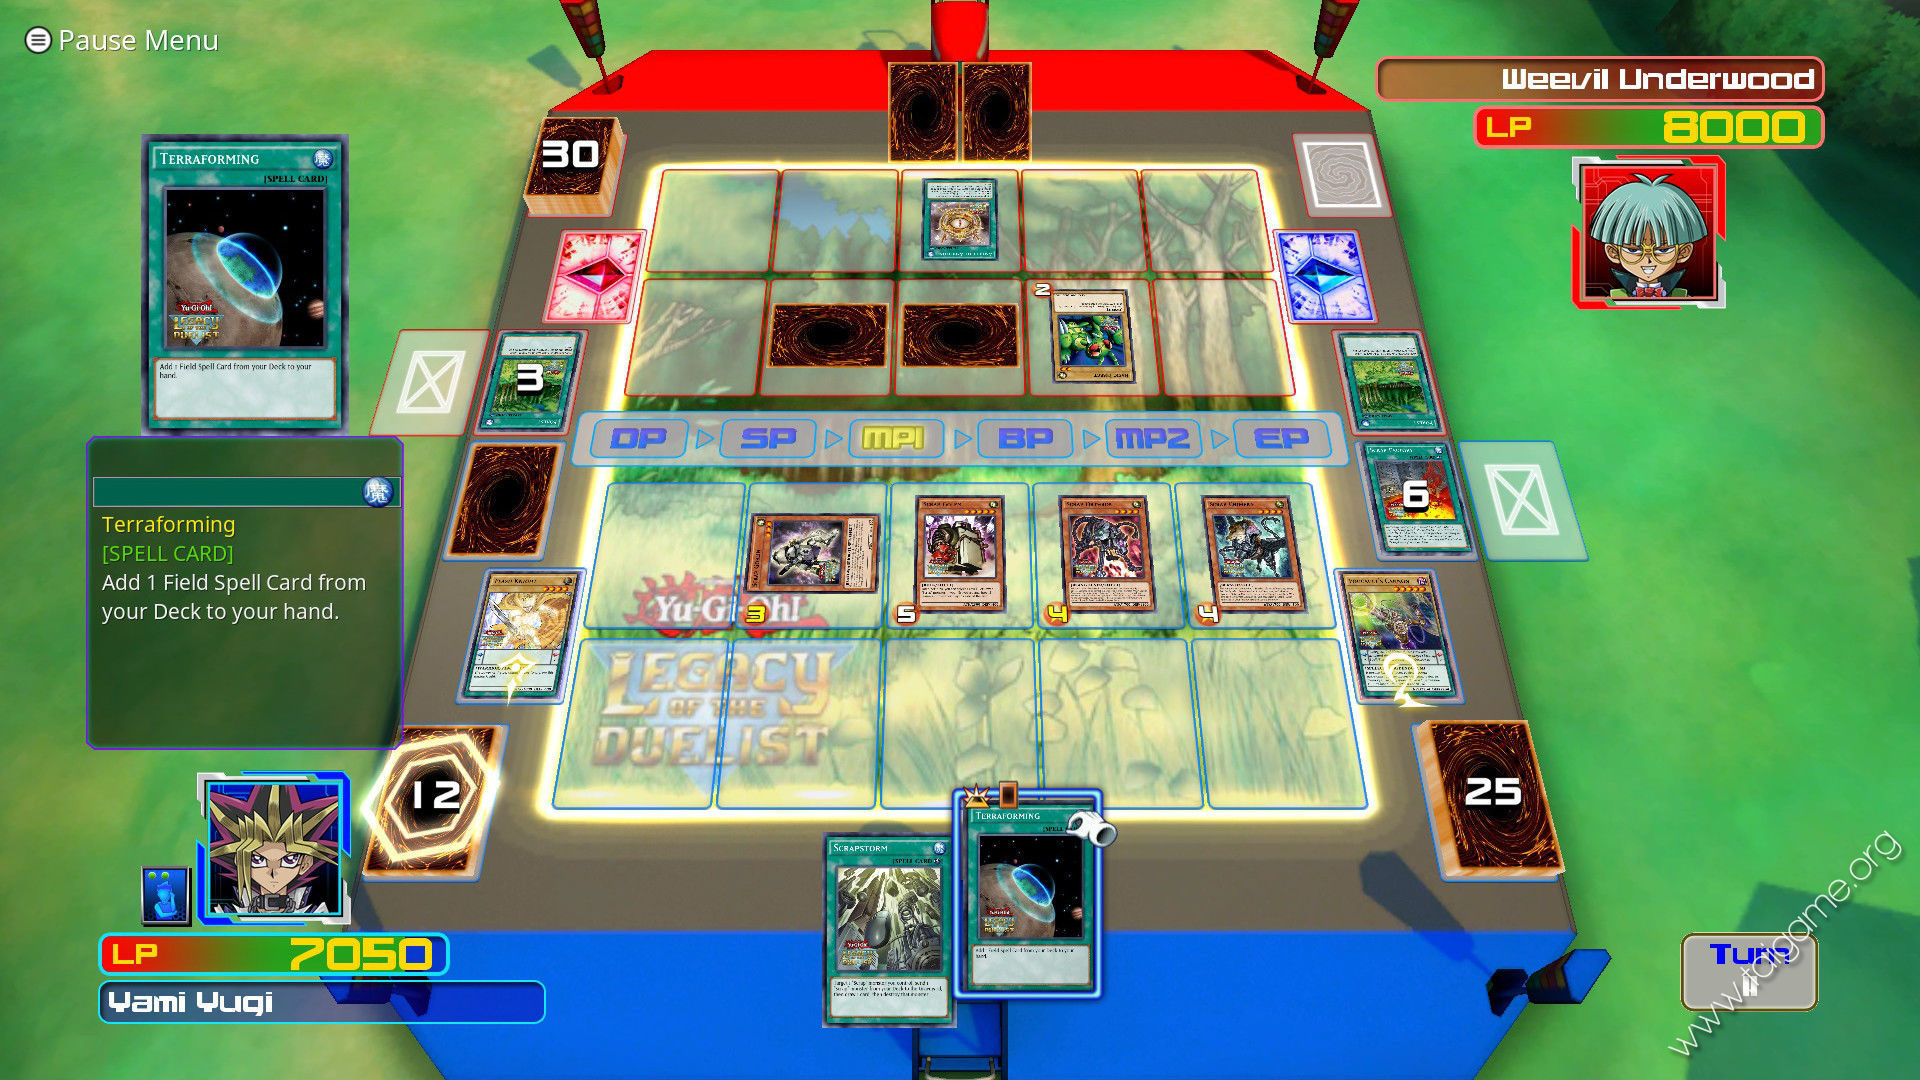 Duel Evolution. 18K likes. TV Network. I've been playing for about a week now and I kinda like it. It took some getting used to as several ... card effects and gameplay mechanics of the original card game have been changed but that's made it all the more strategic and fun. It is most definitely pay to win.